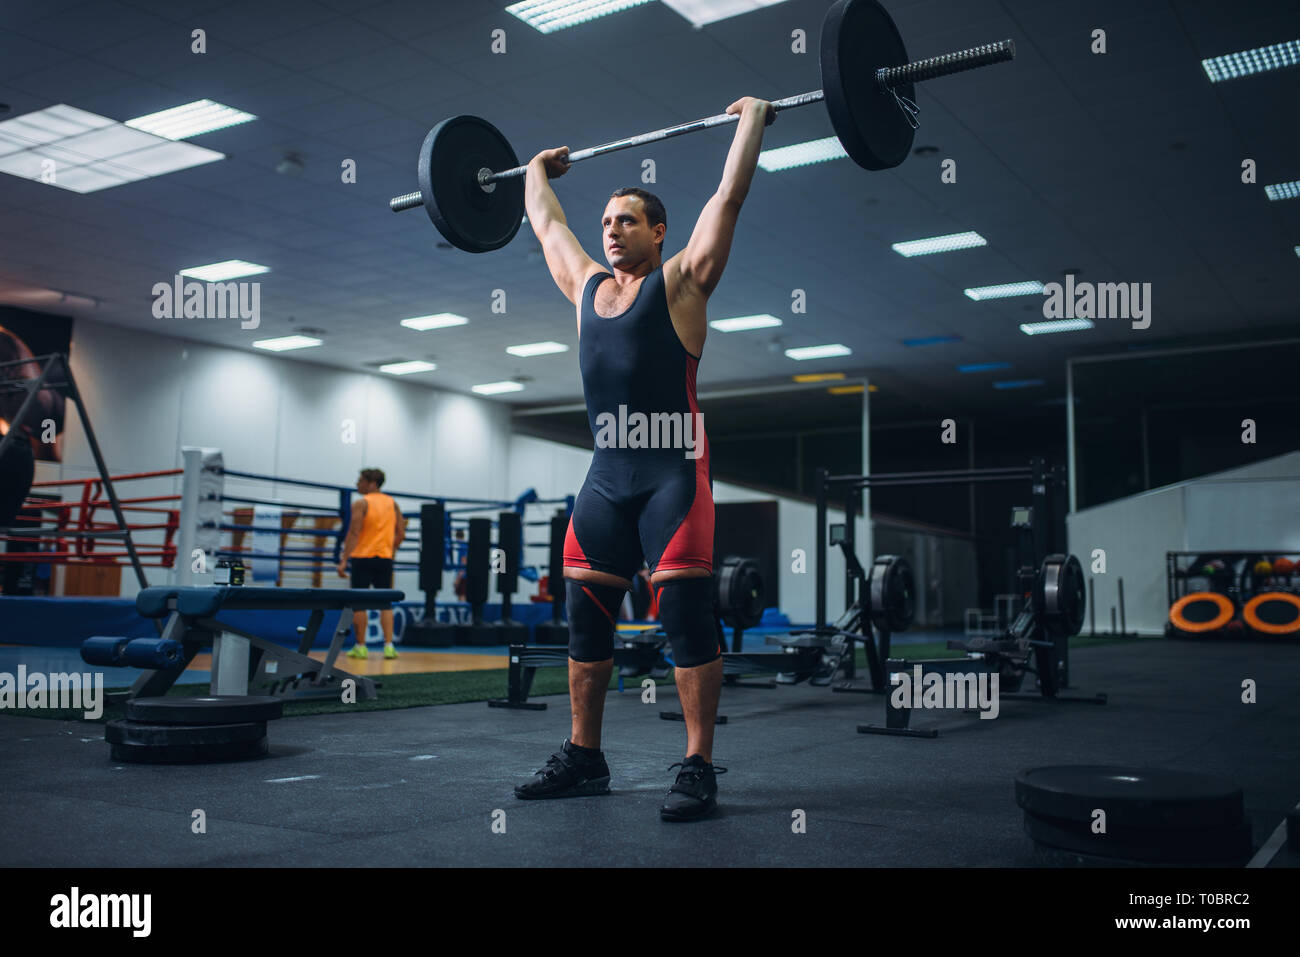 a38a16ce8ea6 Strong male powerlifter doing deadlift a barbell in gym. Weightlifting  workout